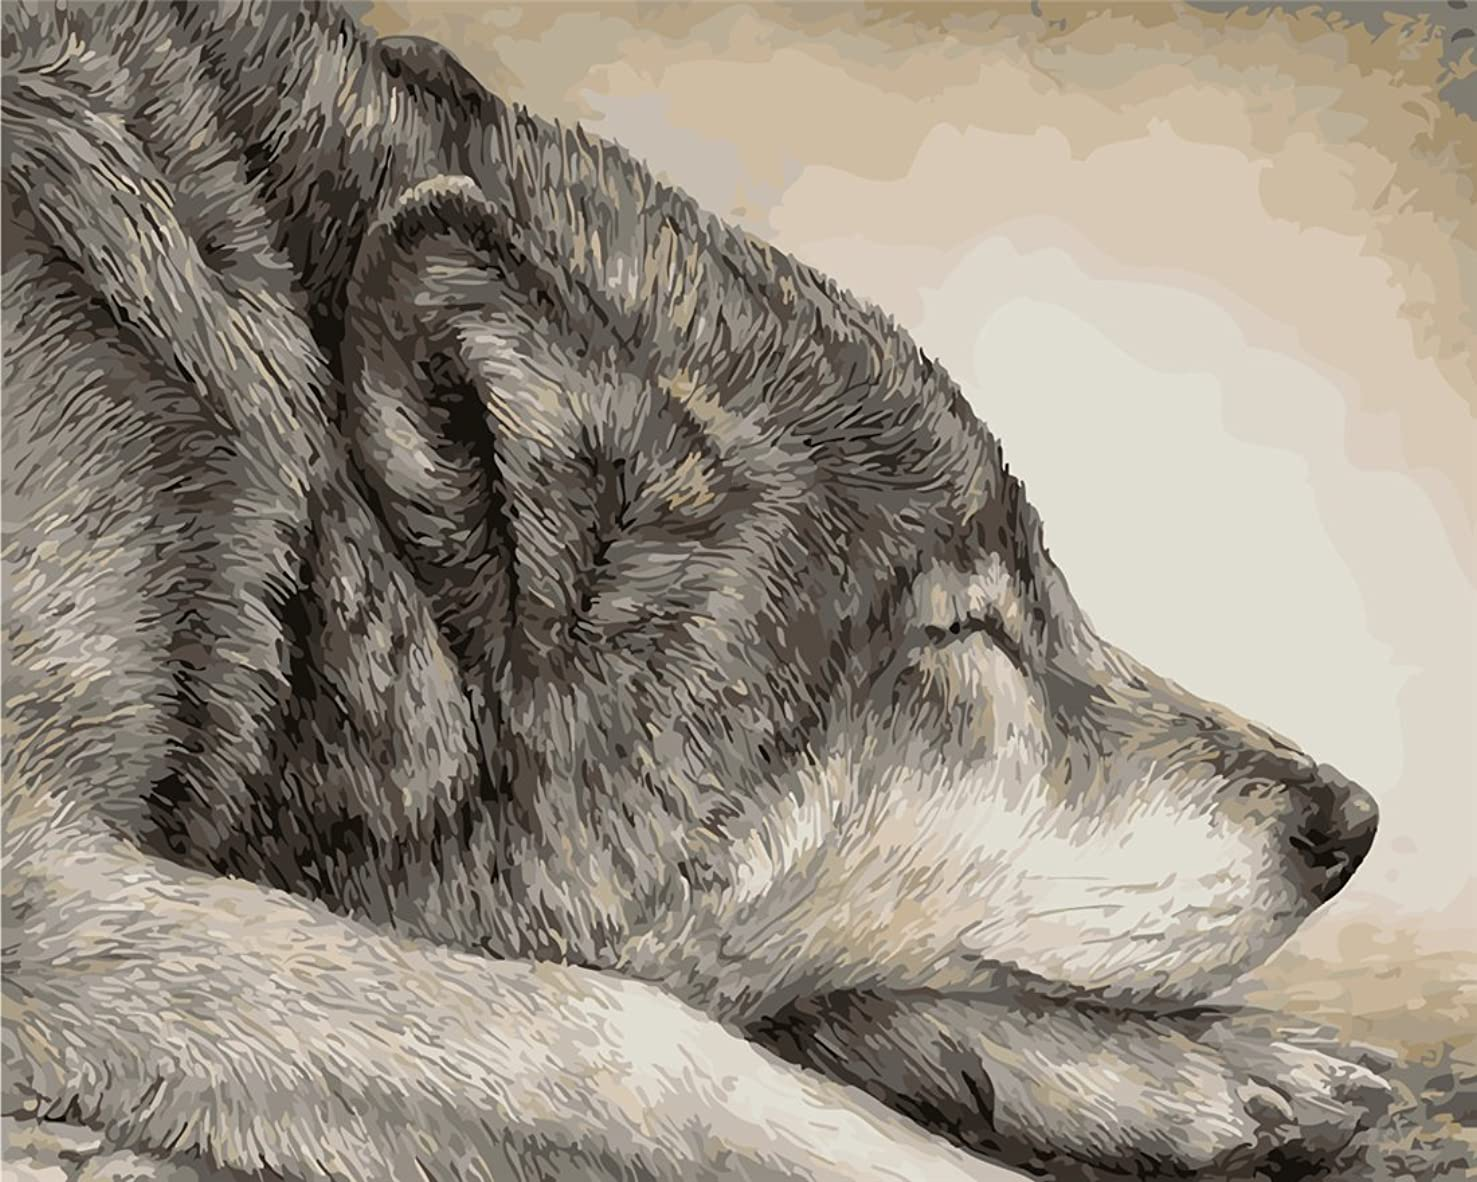 YEESAM Art New DIY Paint by Number Kits for Adults Kids Beginner - Sleeping Wolf 16x20 inch Linen Canvas - Stress Less Number Painting Gifts (with Frame)